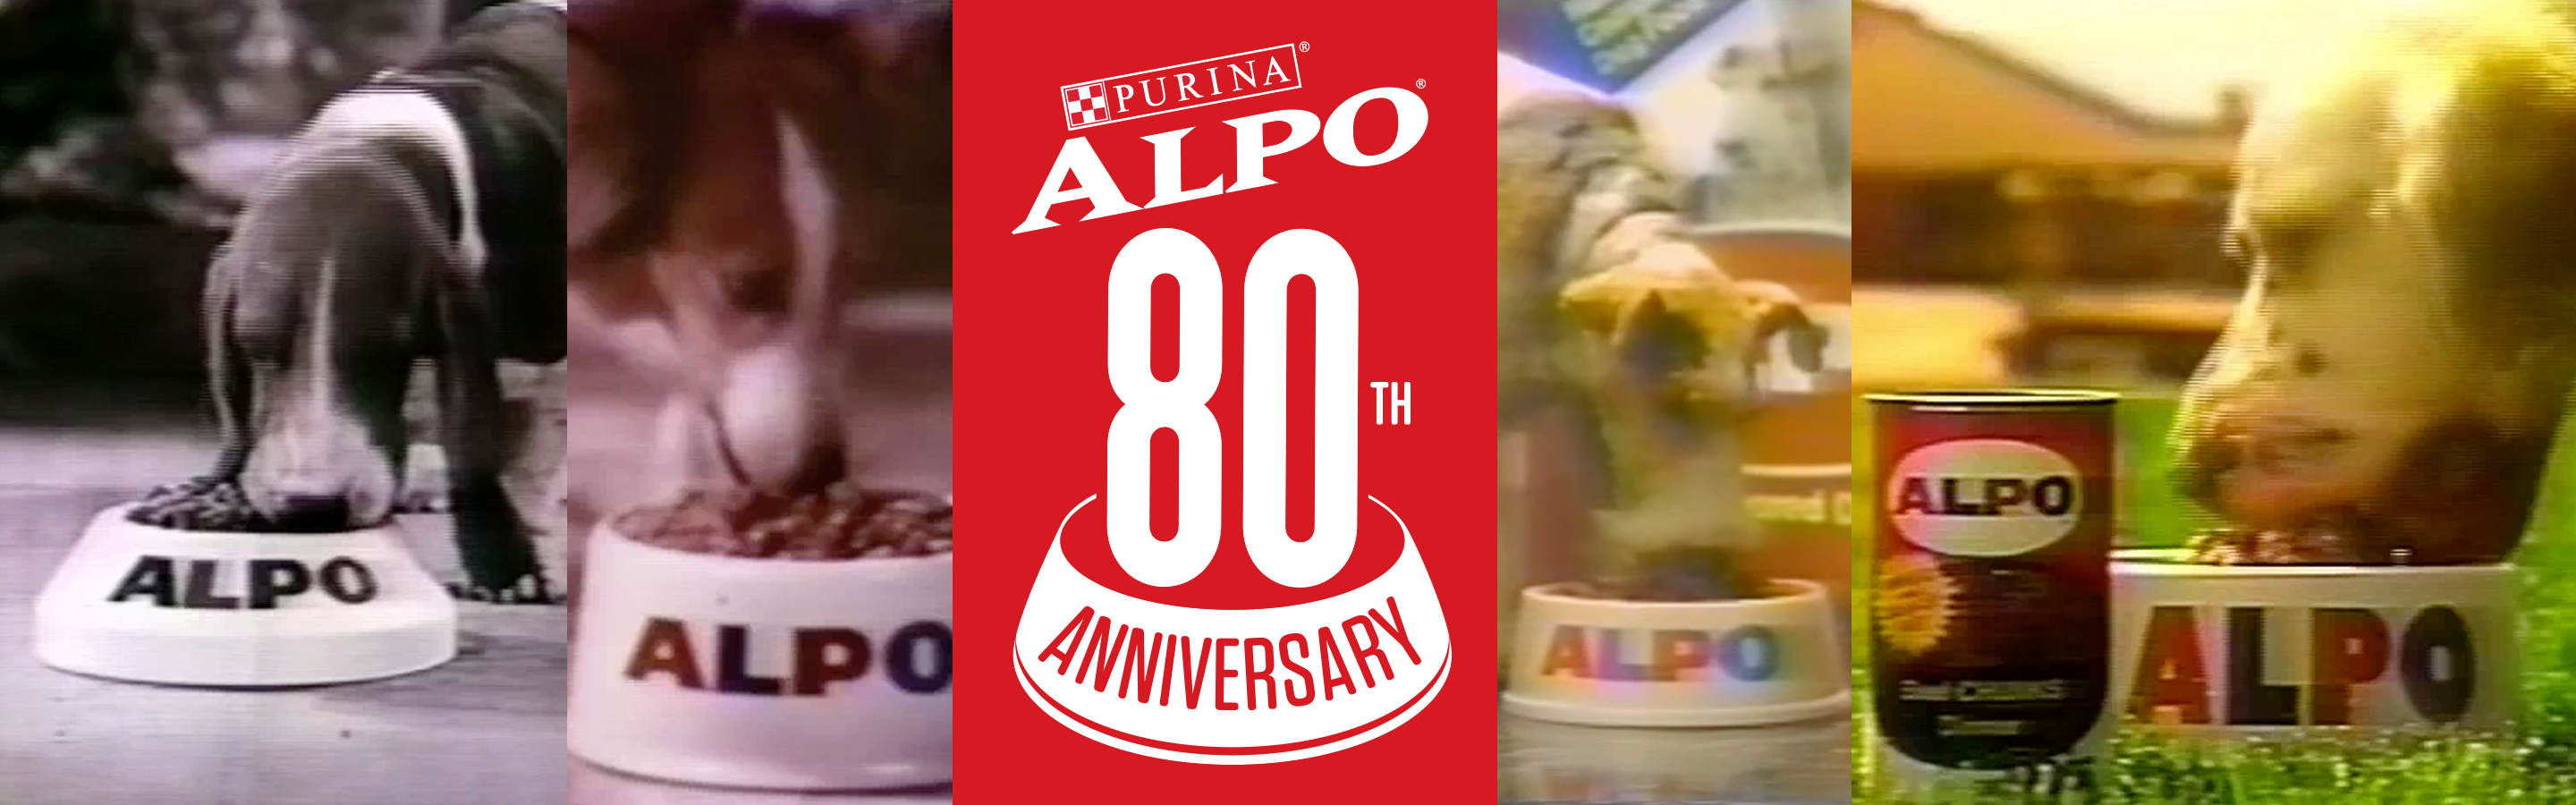 Alpo-Dog-Food-80th-Anniversary.png